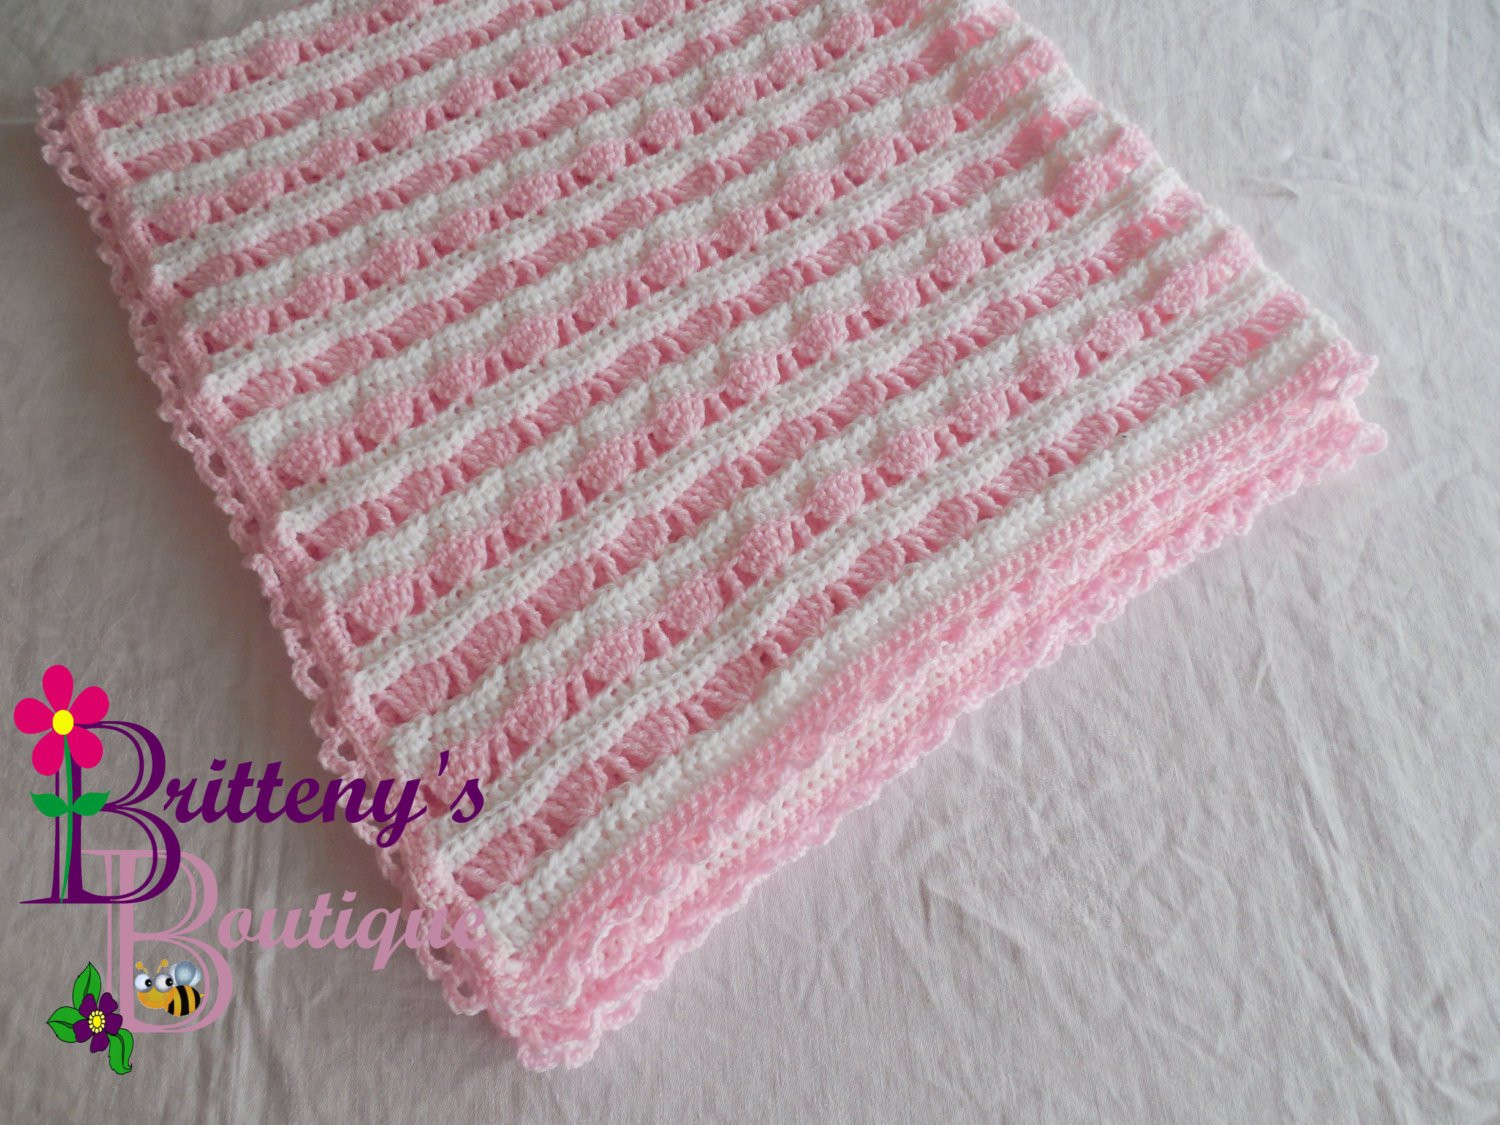 Baby Girl Crochet Blanket Patterns Best Of Crochet Baby Blanket Pattern Crochet Baby Girl Blanket Of Unique 41 Photos Baby Girl Crochet Blanket Patterns